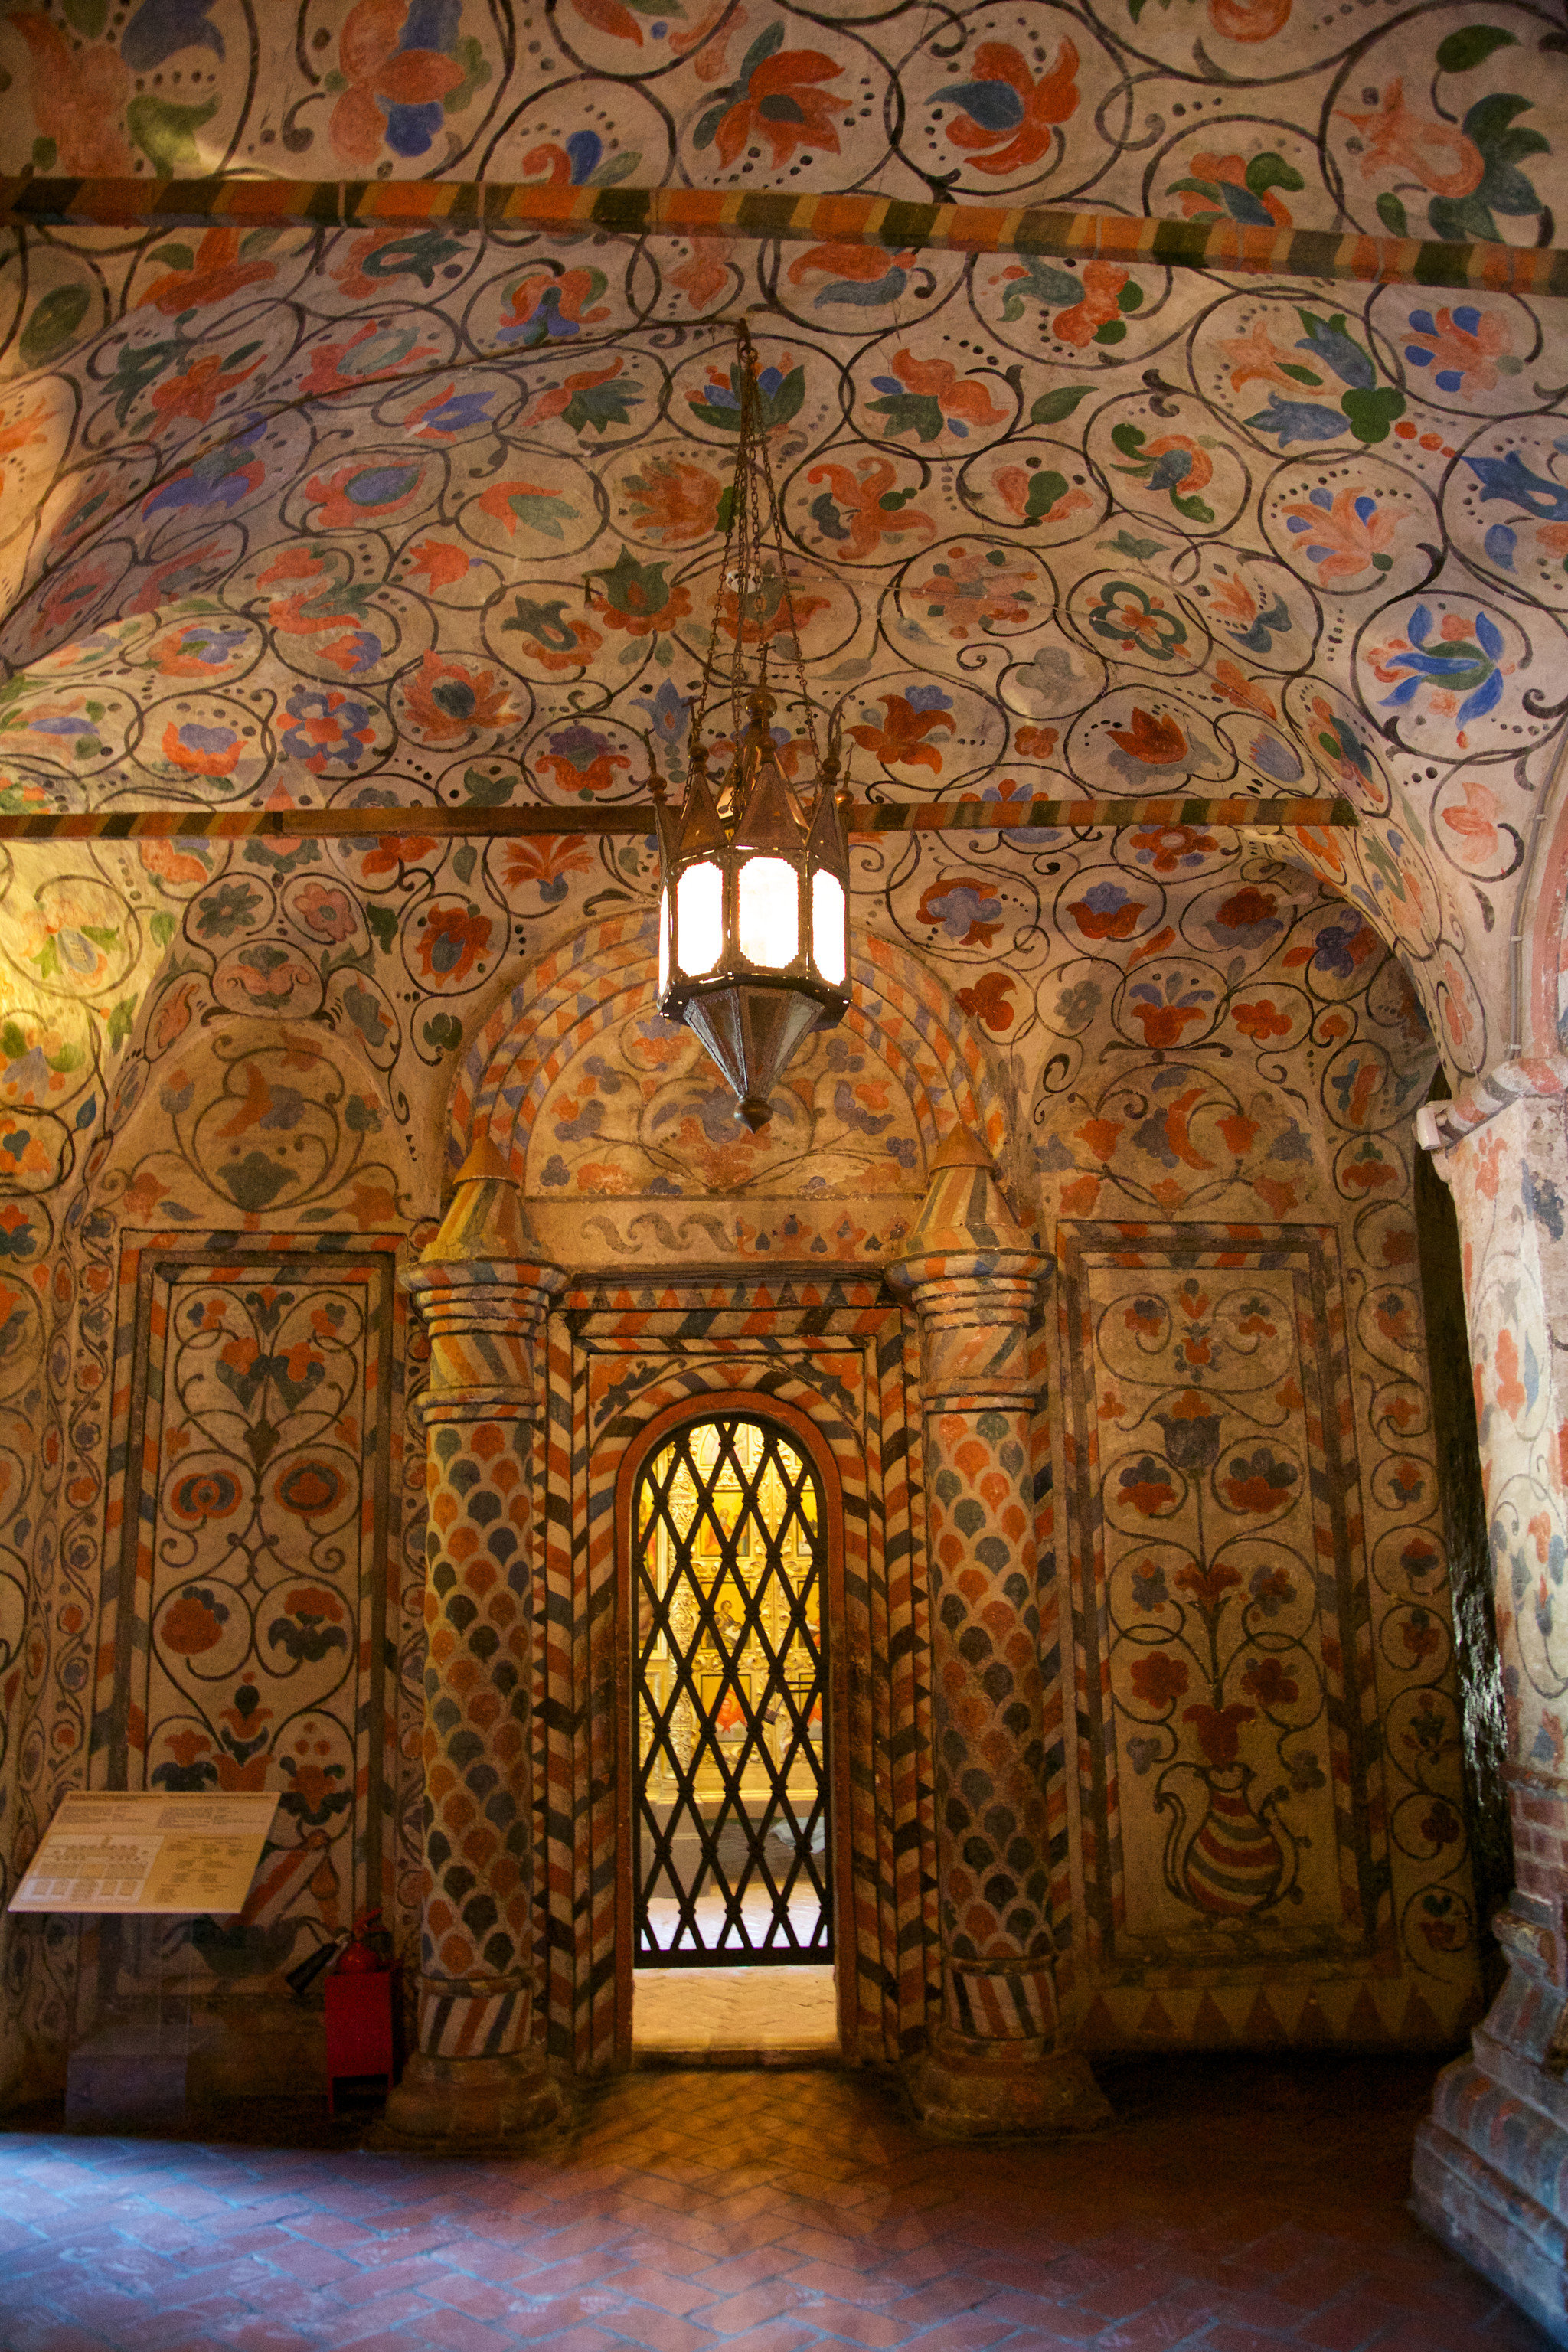 Trip Ideas indoor wall floor room building colorful art ancient history carving palace temple flooring decorated colored painting arch altar